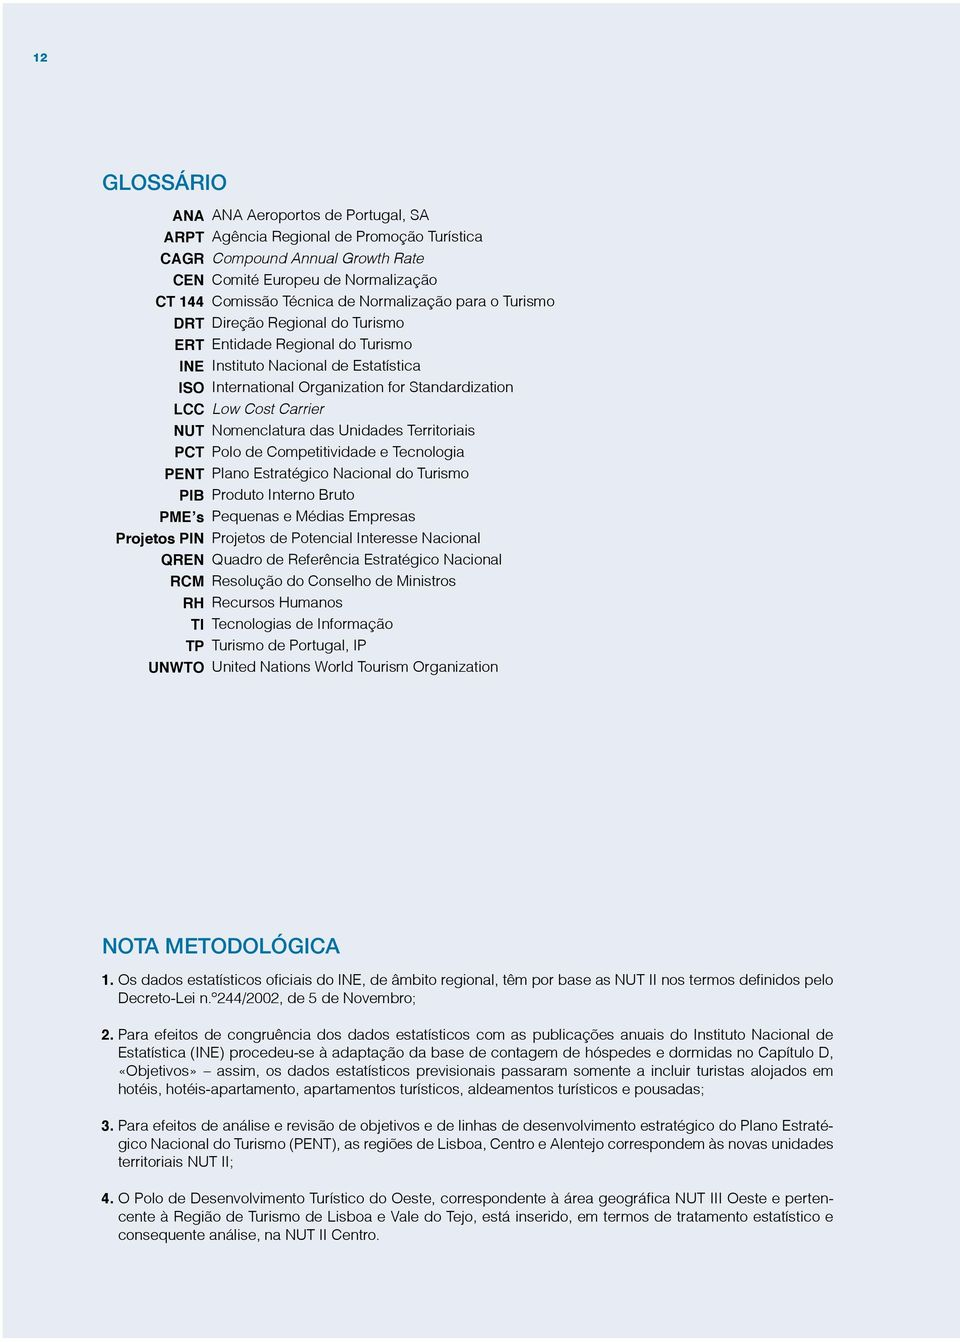 International Organization for Standardization Low Cost Carrier Nomenclatura das Unidades Territoriais Polo de Competitividade e Tecnologia Plano Estratégico Nacional do Turismo Produto Interno Bruto